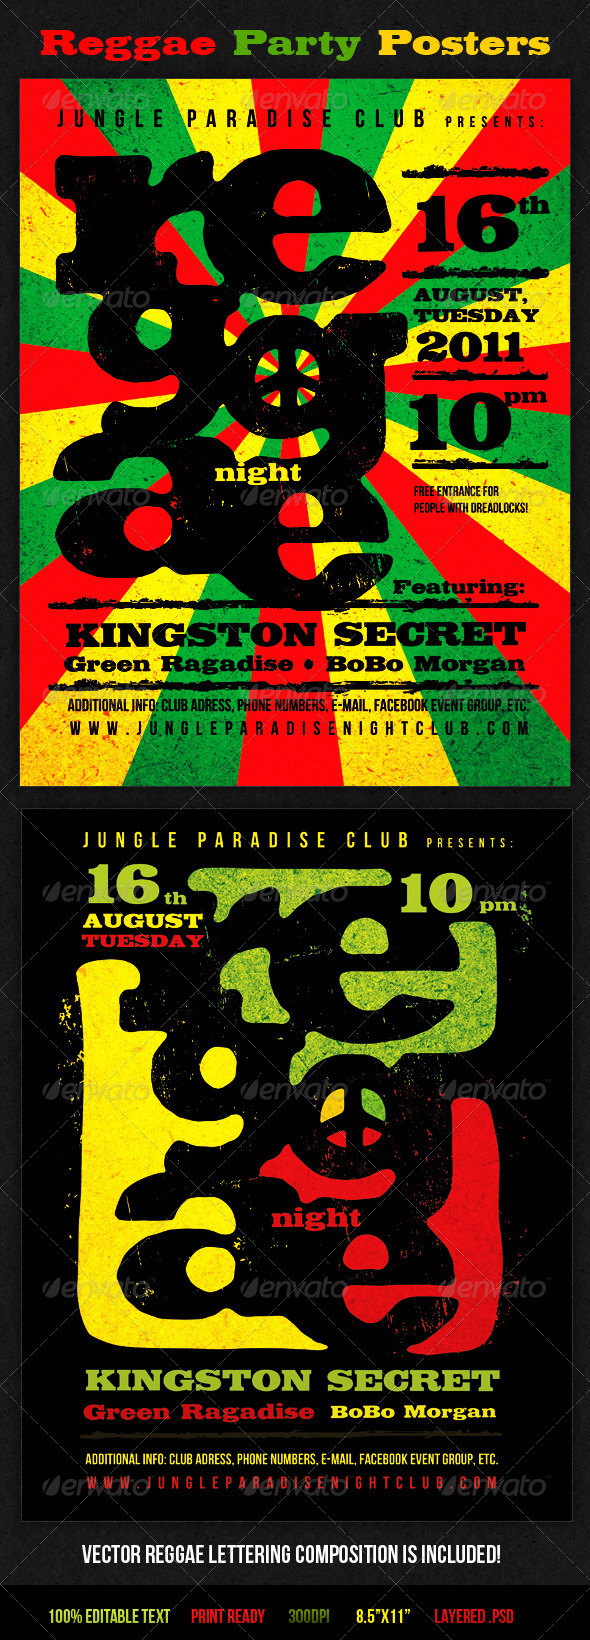 GraphicRiver Reggae Party Posters 405274